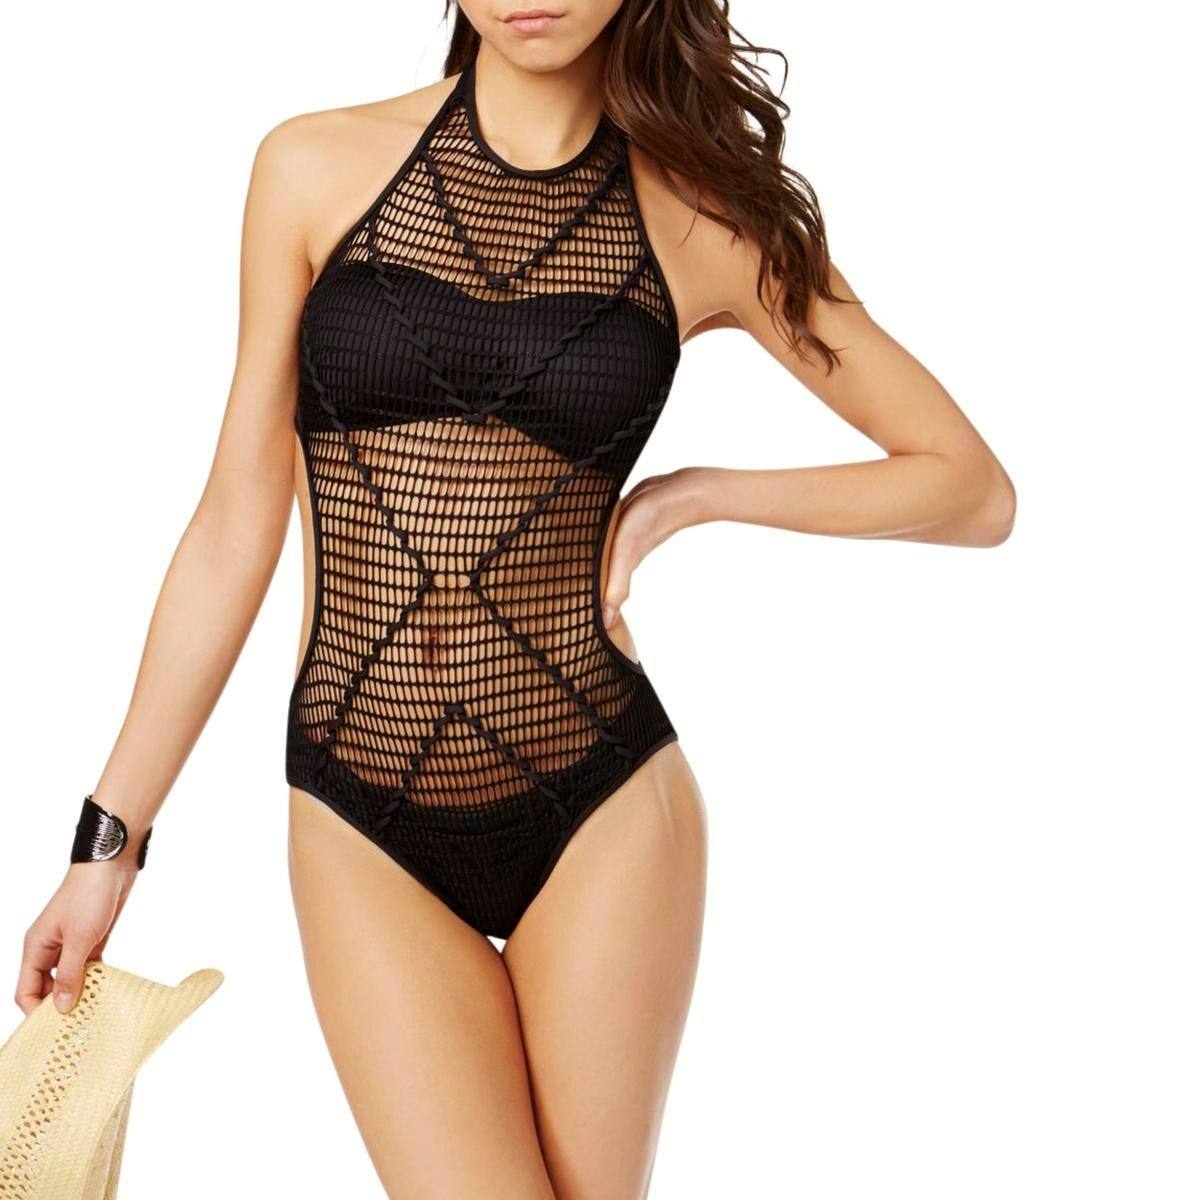 f4fda06db0 Shop Kenneth Cole Womens Wrapped In Love Crochet High-Neck Monokini Swimsuit  - Free Shipping On Orders Over $45 - Overstock - 22022758